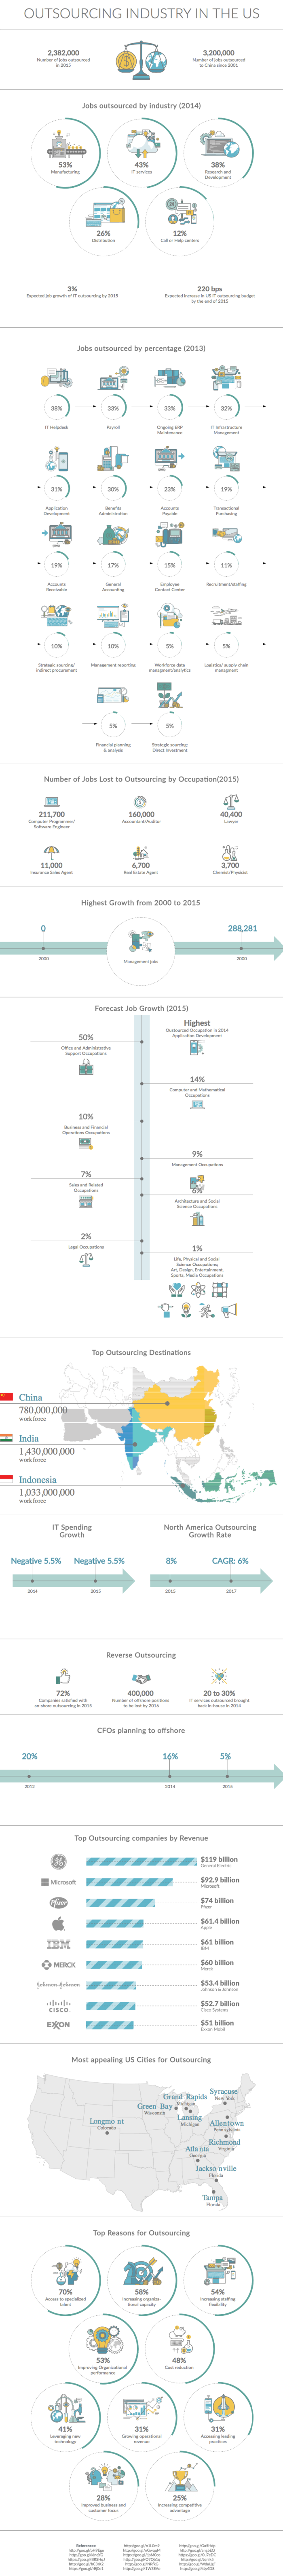 Outsourcing Industry in the US Infographic